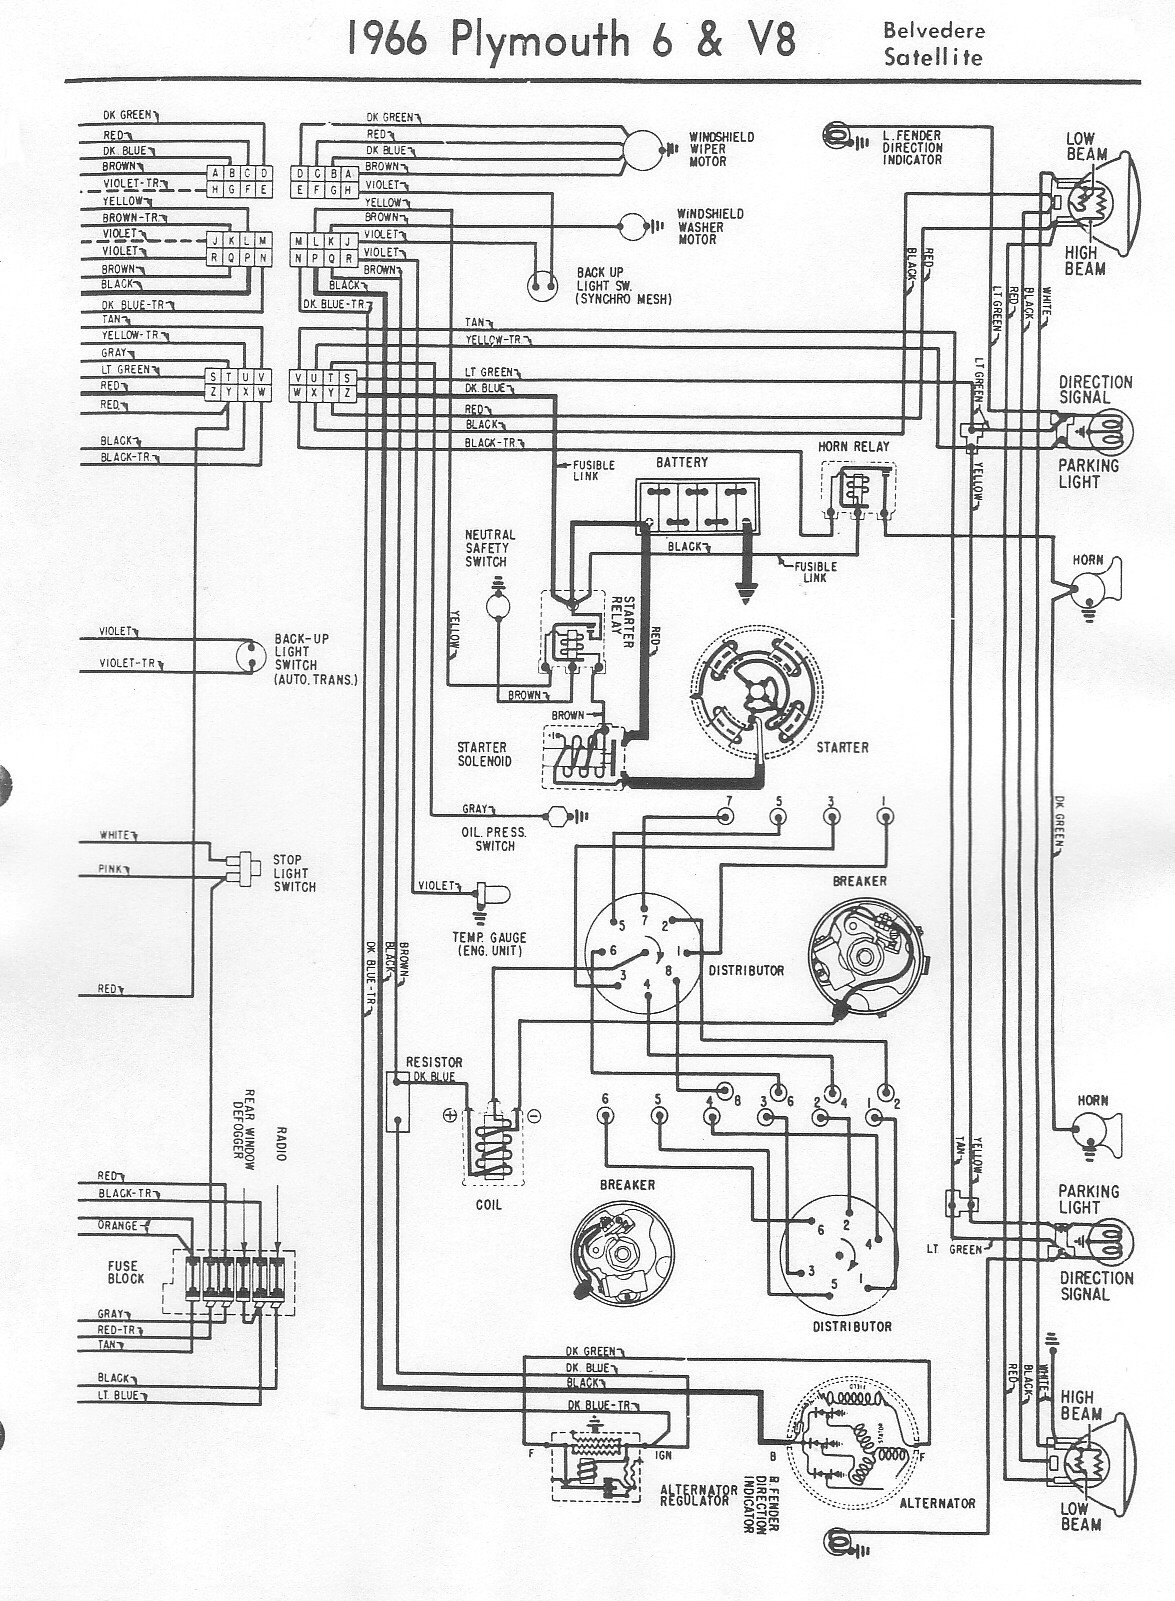 wiring diagram for 1999 plymouth voyager wiring diagram for 1966 plymouth barracuda i need a wiring lay out for a windshield wiper motor and ... #7